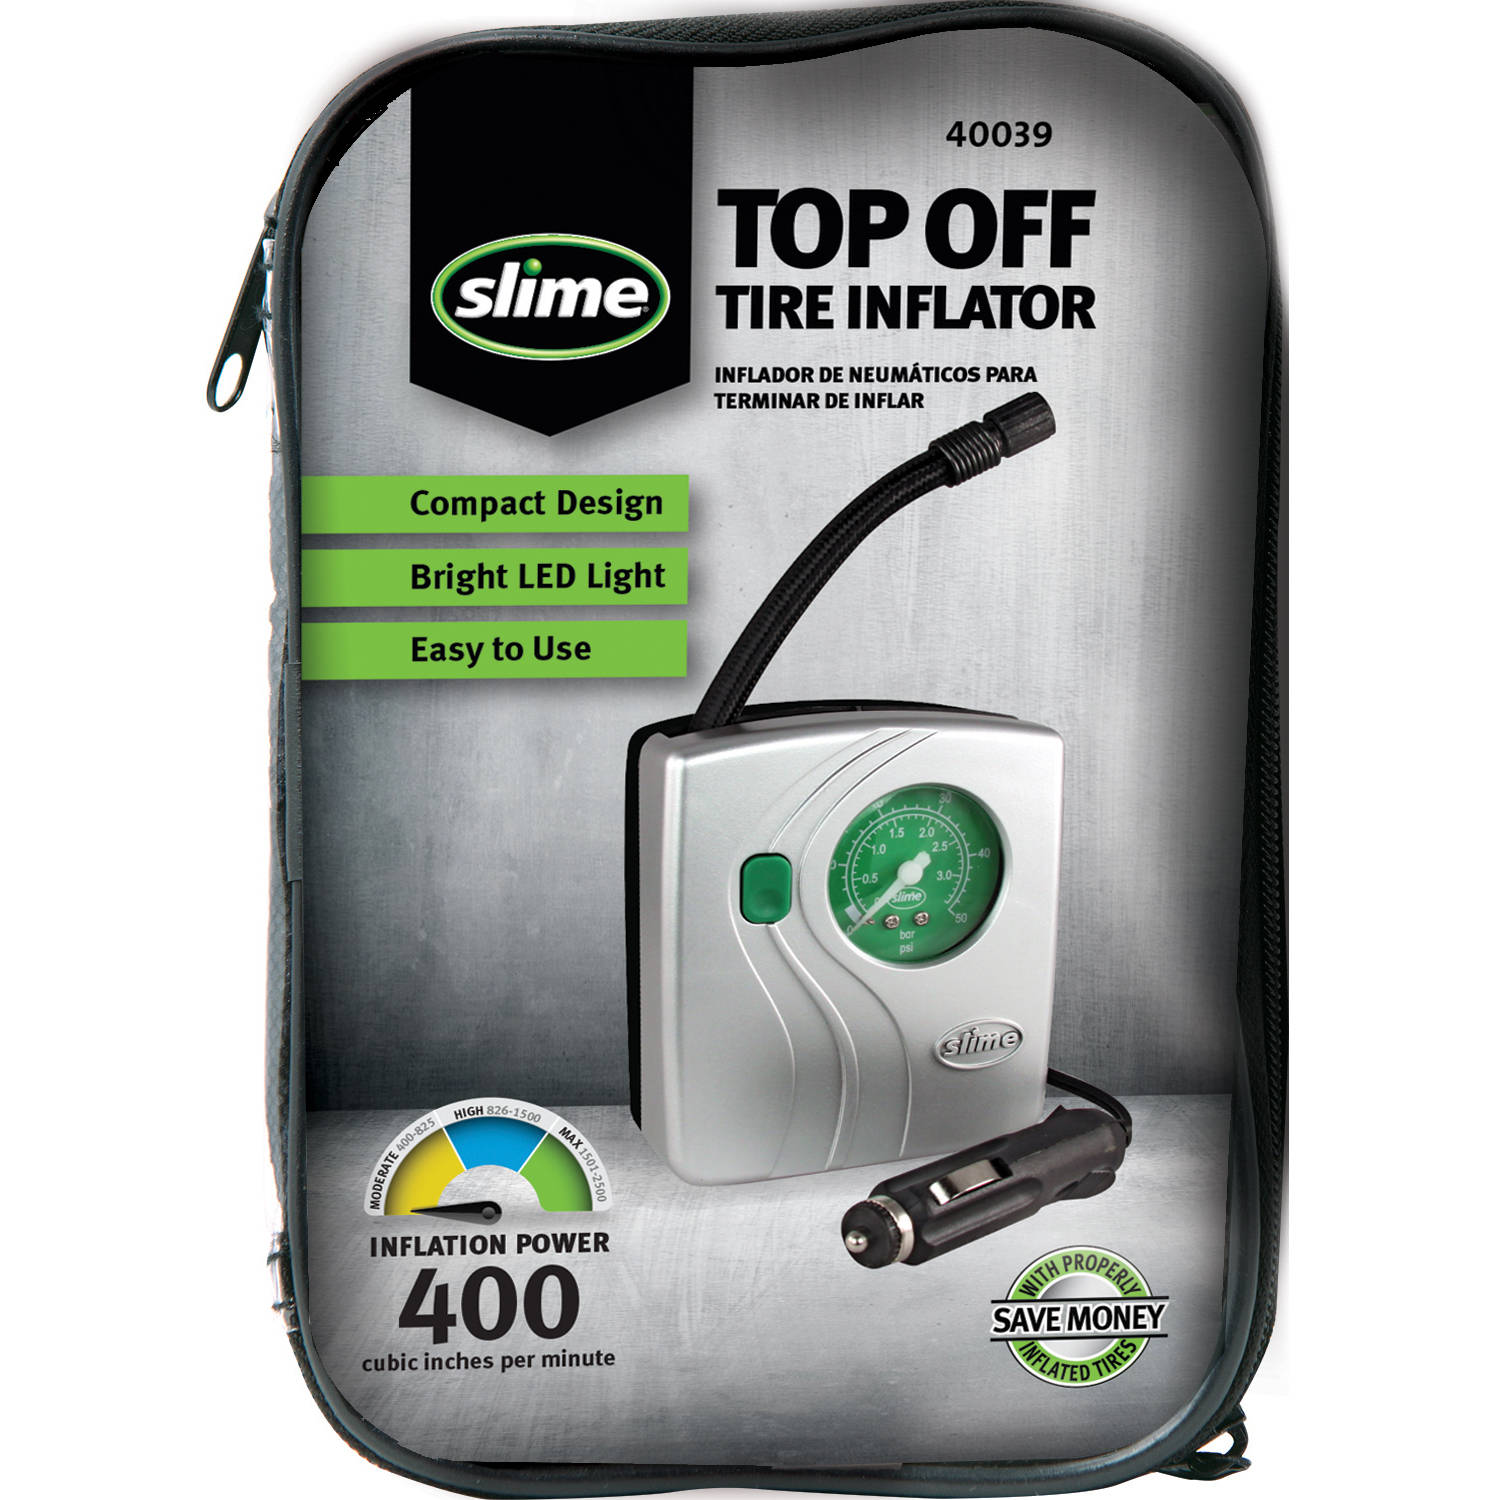 Slime Top Off Tire Inflator